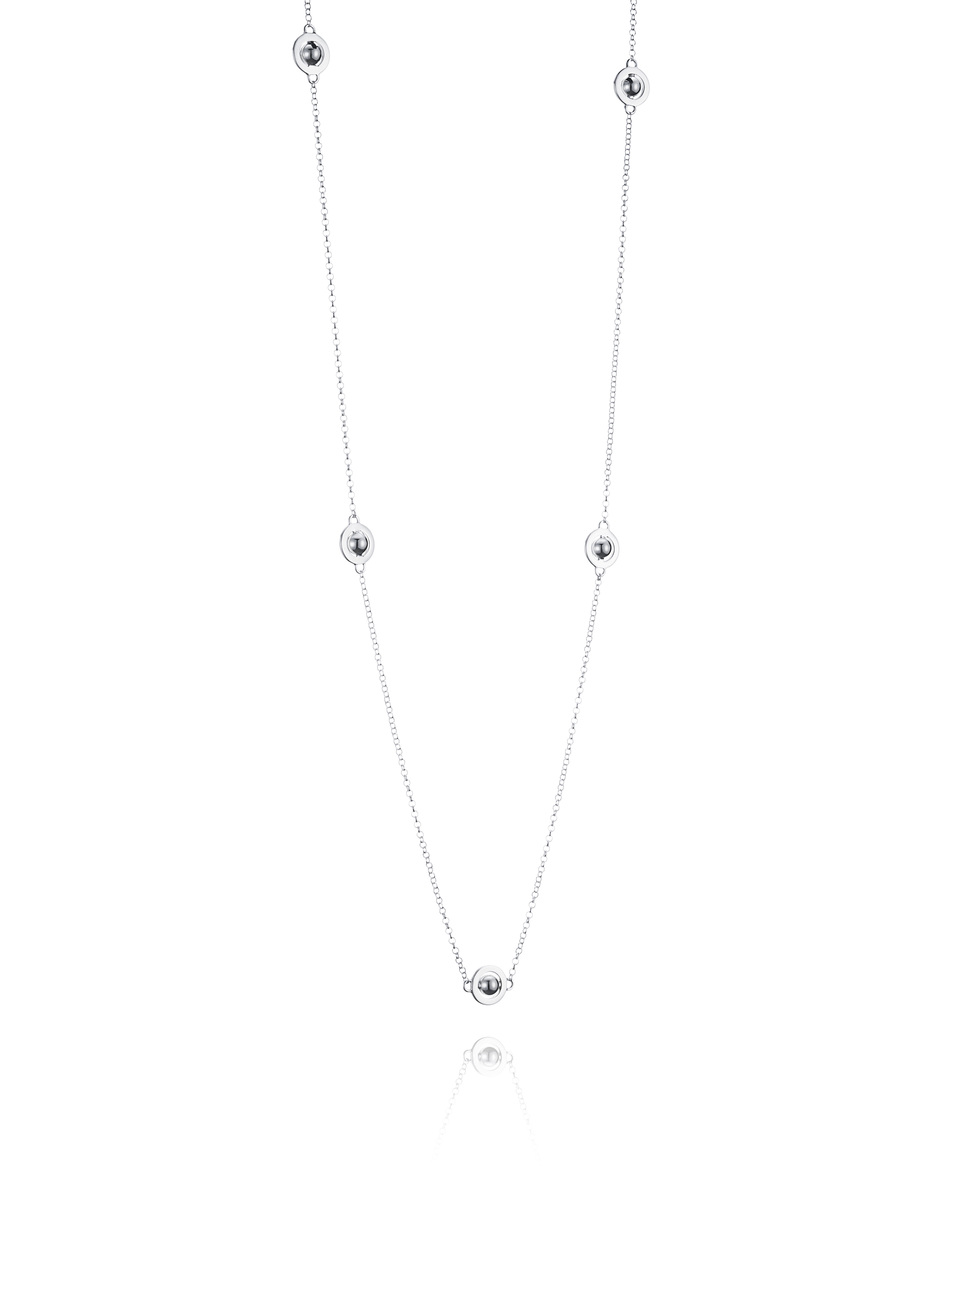 Mini 7 Planets Necklace 10-100-00567(2)